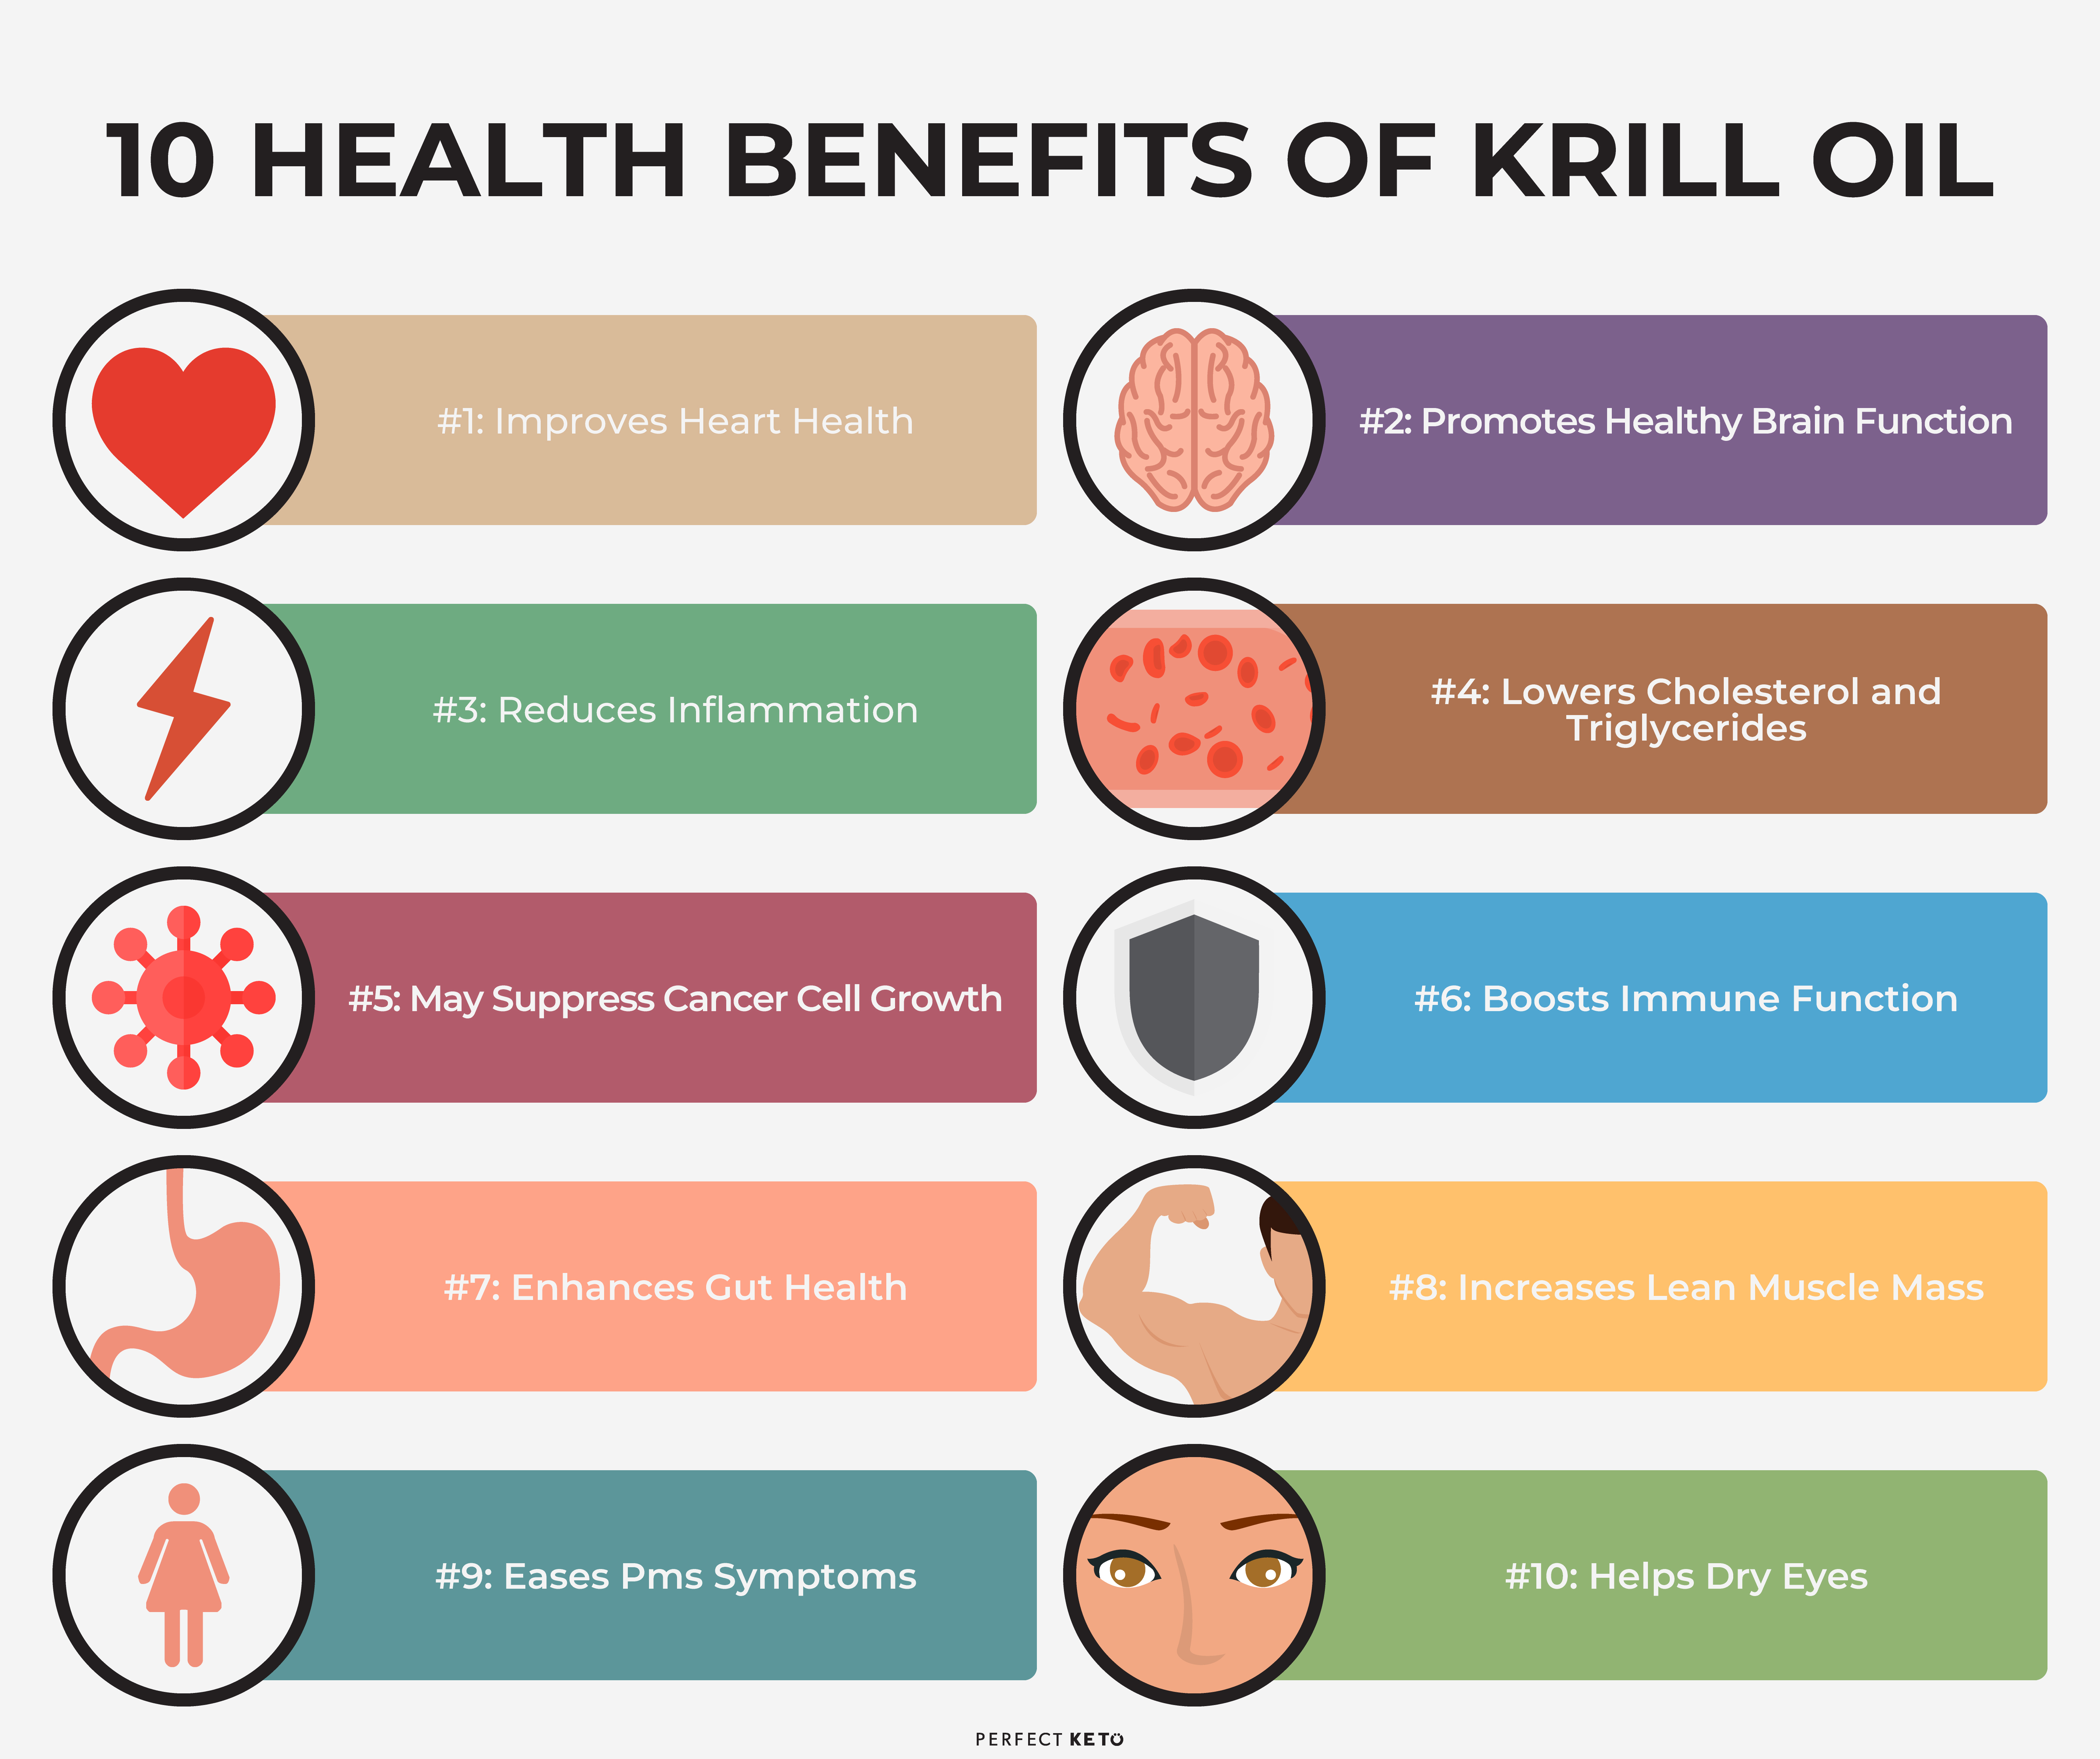 10-health-benefits-of-krill-oil.jpg